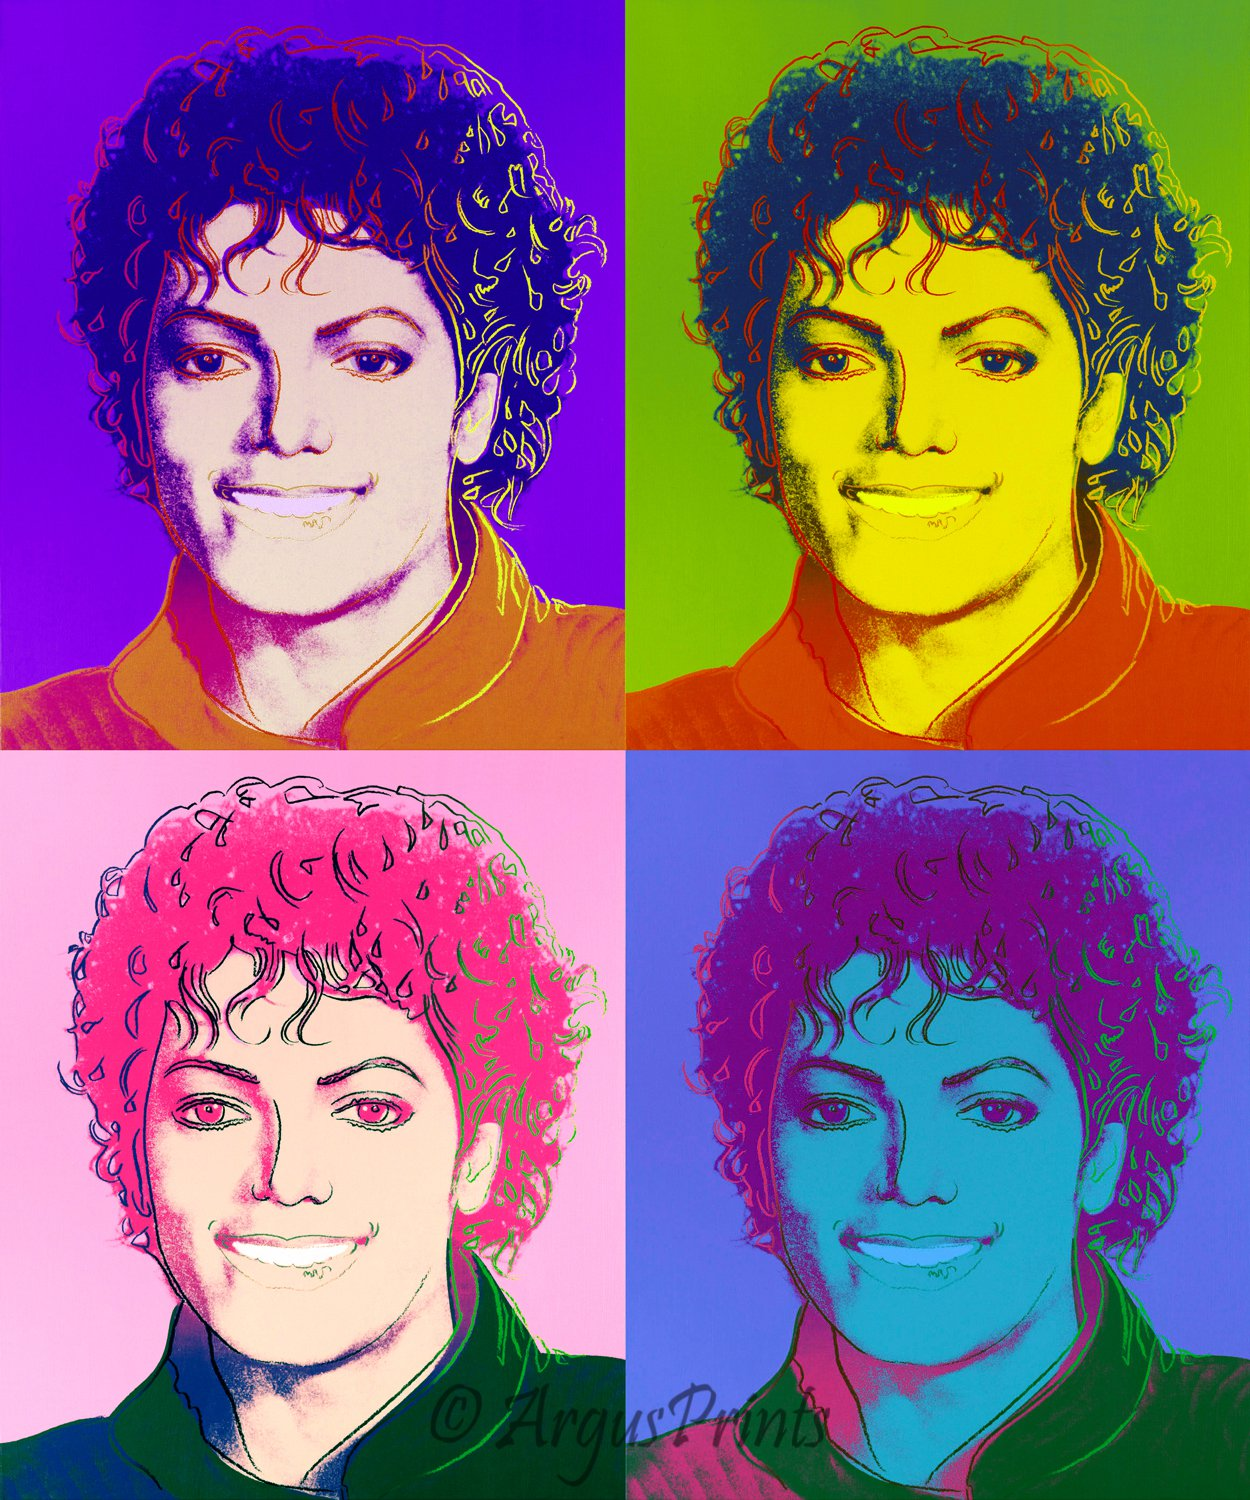 michael jackson 4 image portrait canvas pop art print inspired by andy warhol. Black Bedroom Furniture Sets. Home Design Ideas